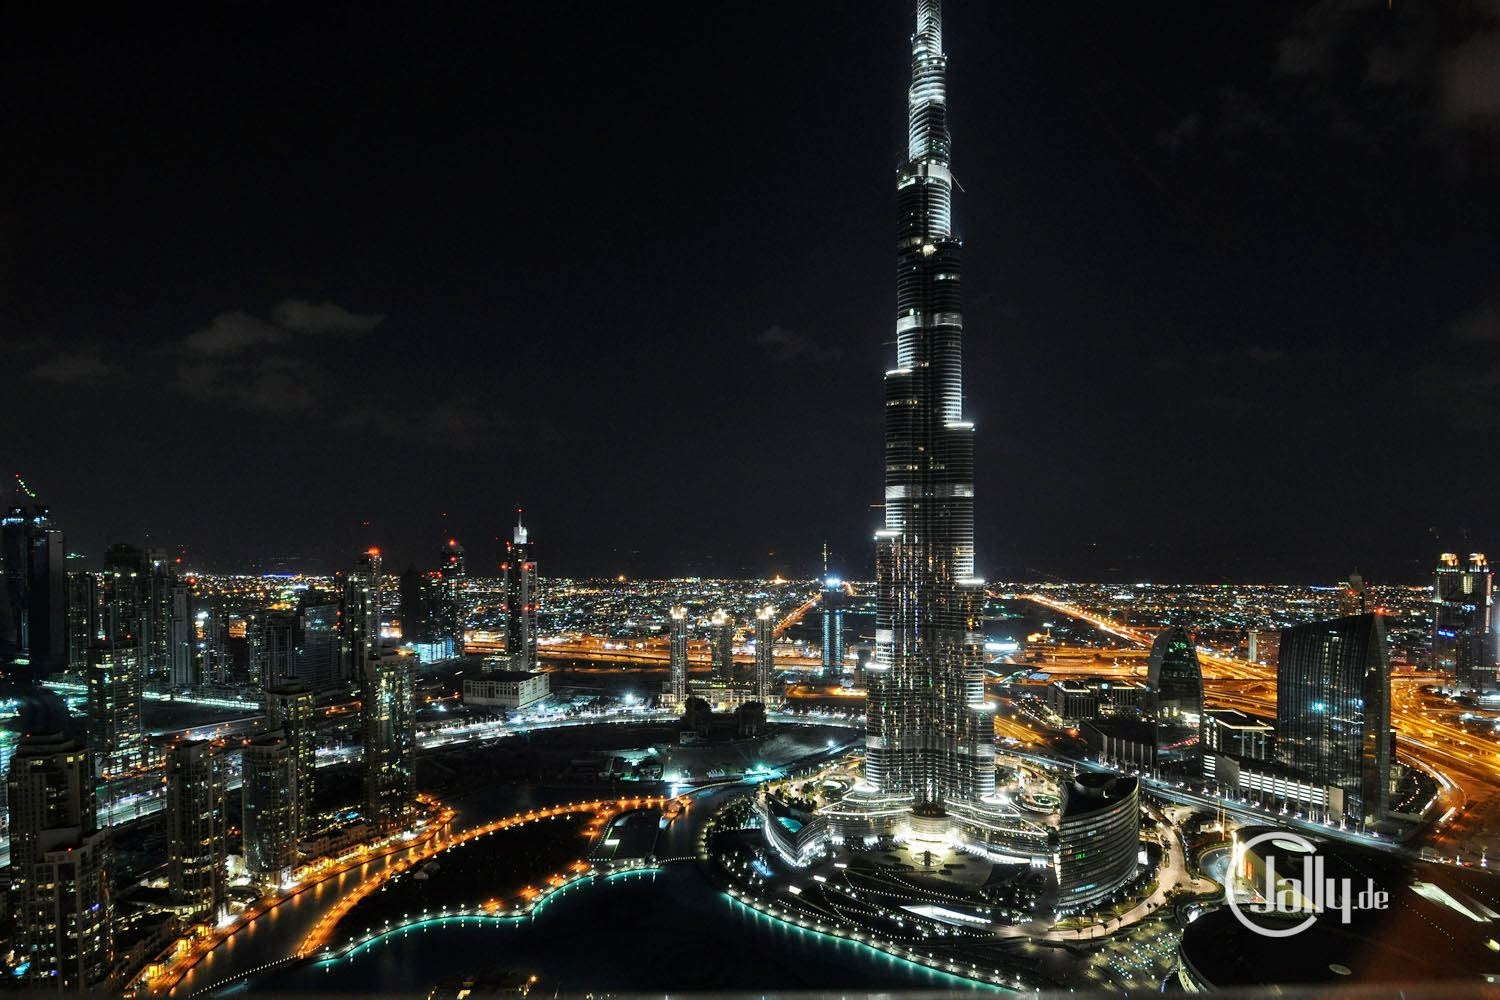 Inside Iphone X Wallpaper Burj Khalifa Tallest Man Made Structure In The World In